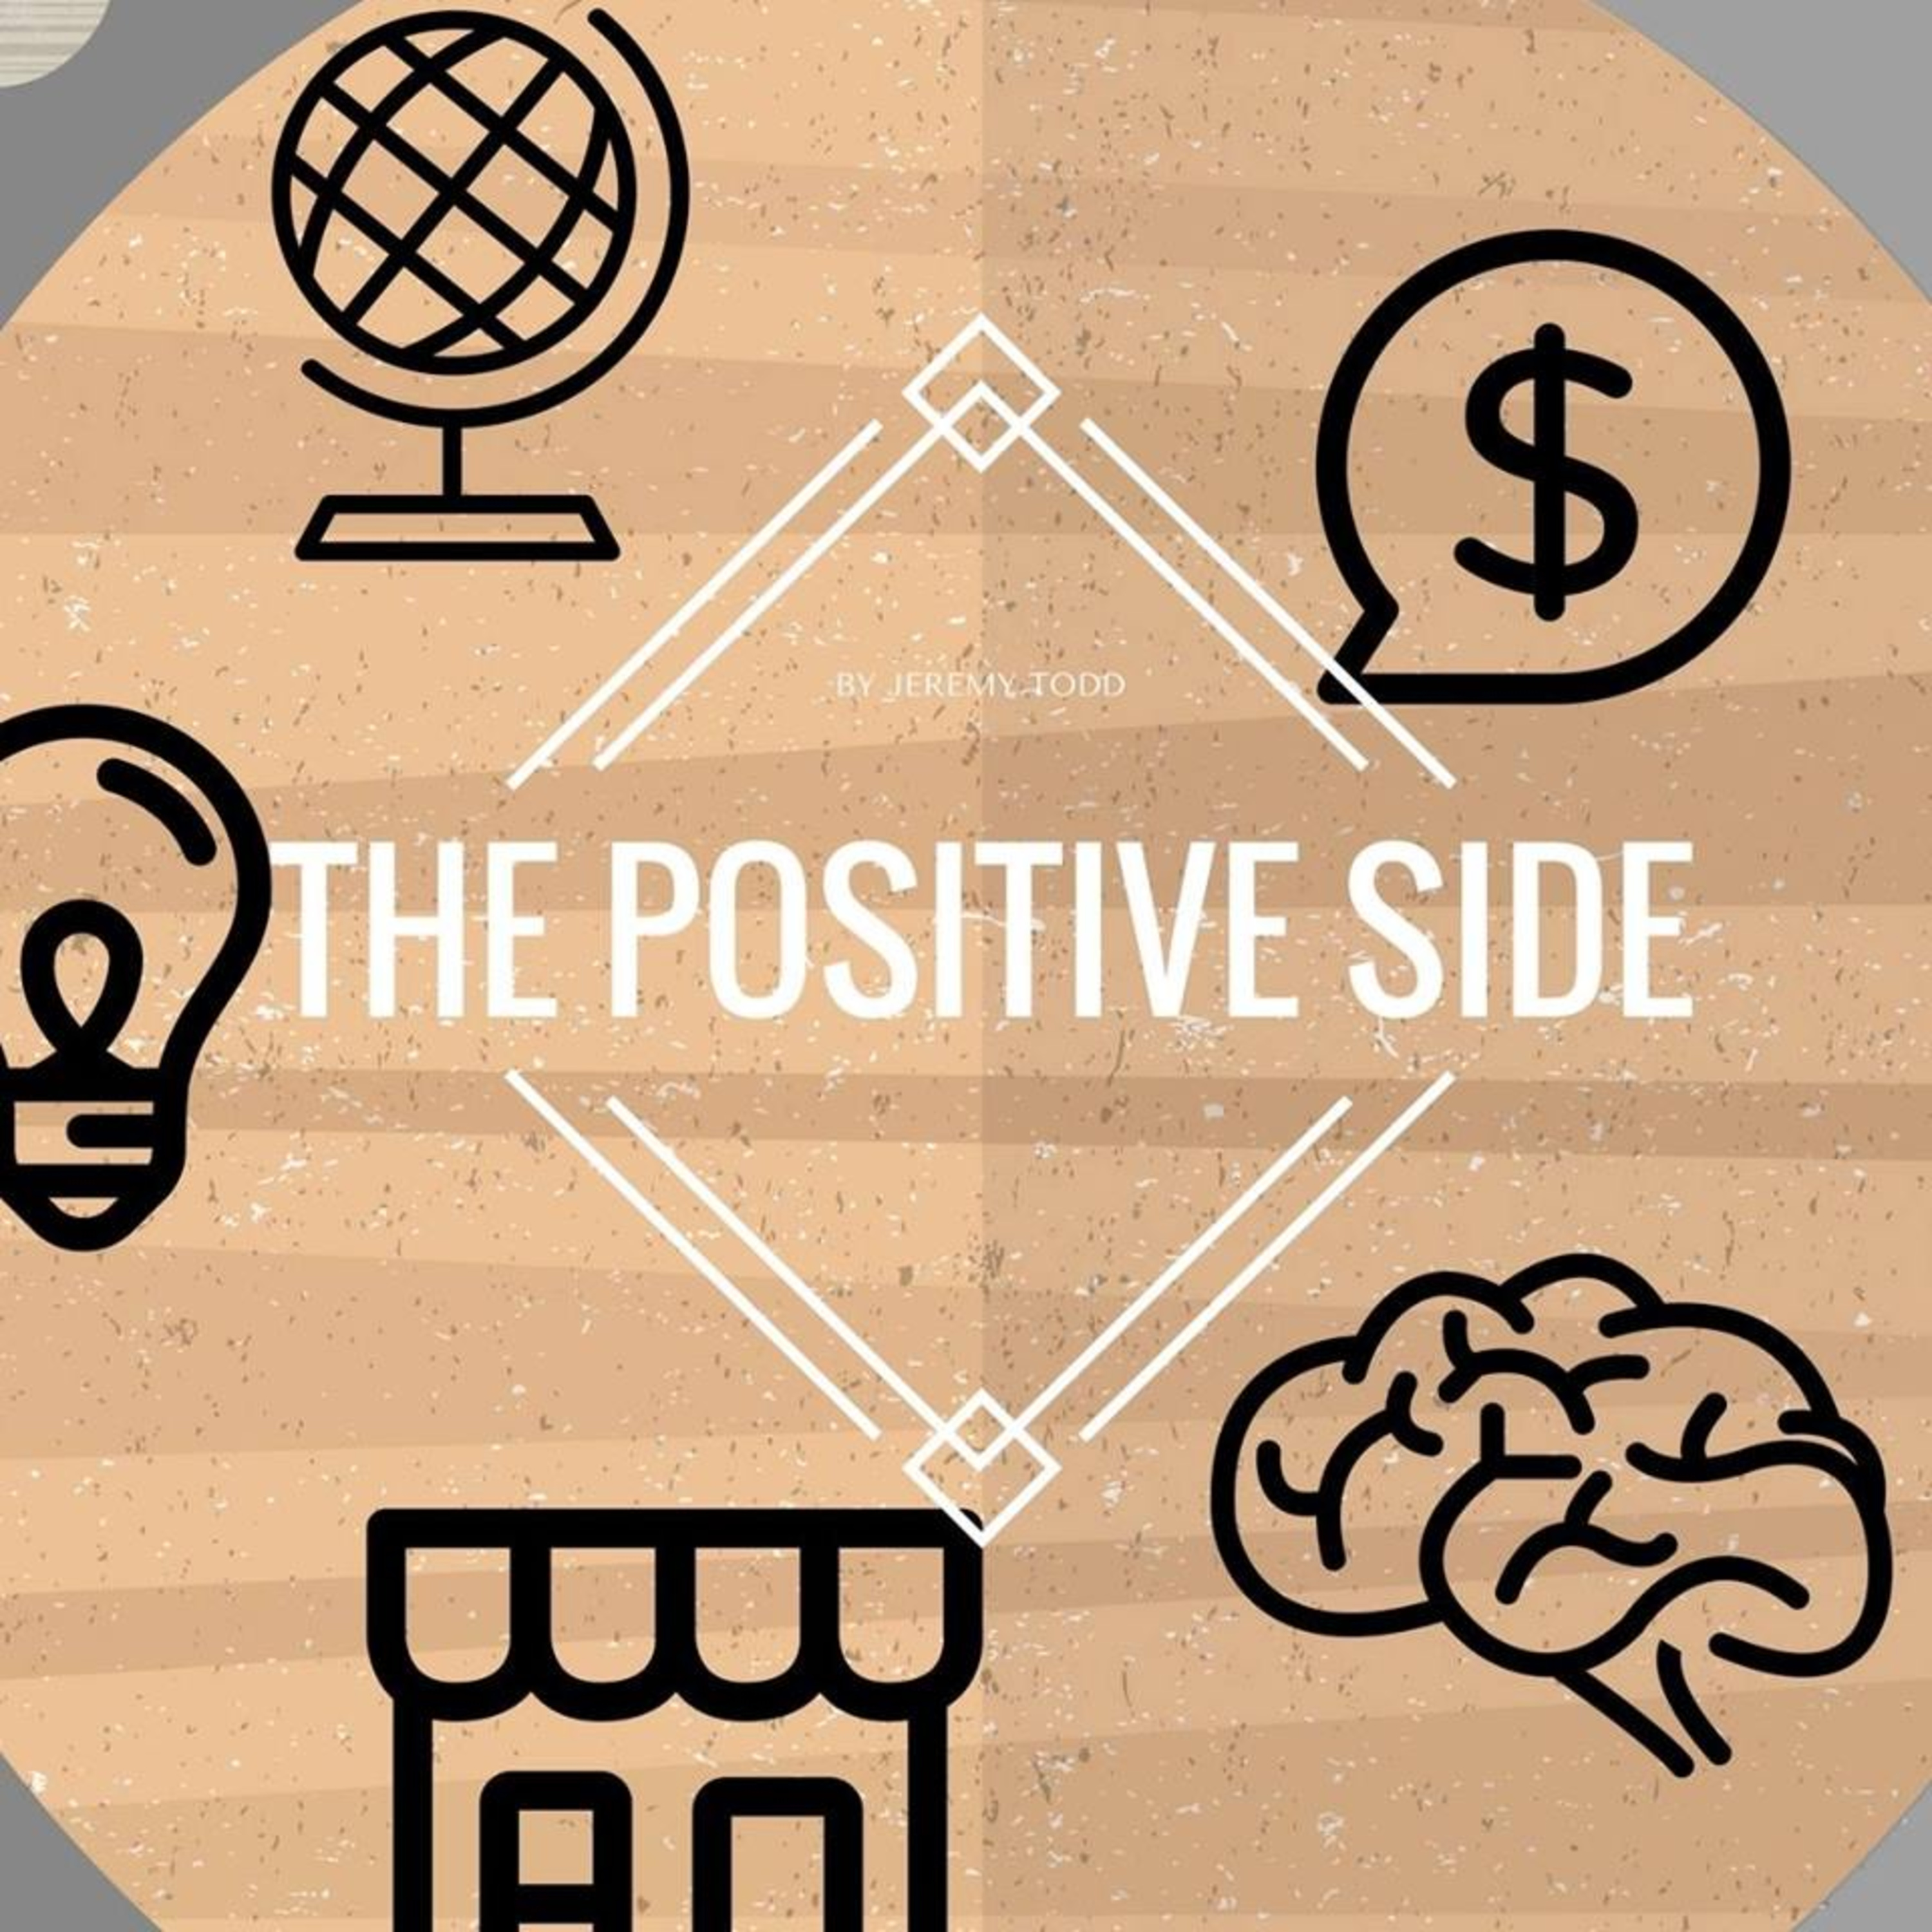 #79 | The Positive Side Podcast | Guest Spot | CONSPIRACY | Roots | Corona | Lyme | Television | Mass Hysteria | Fear Mongering